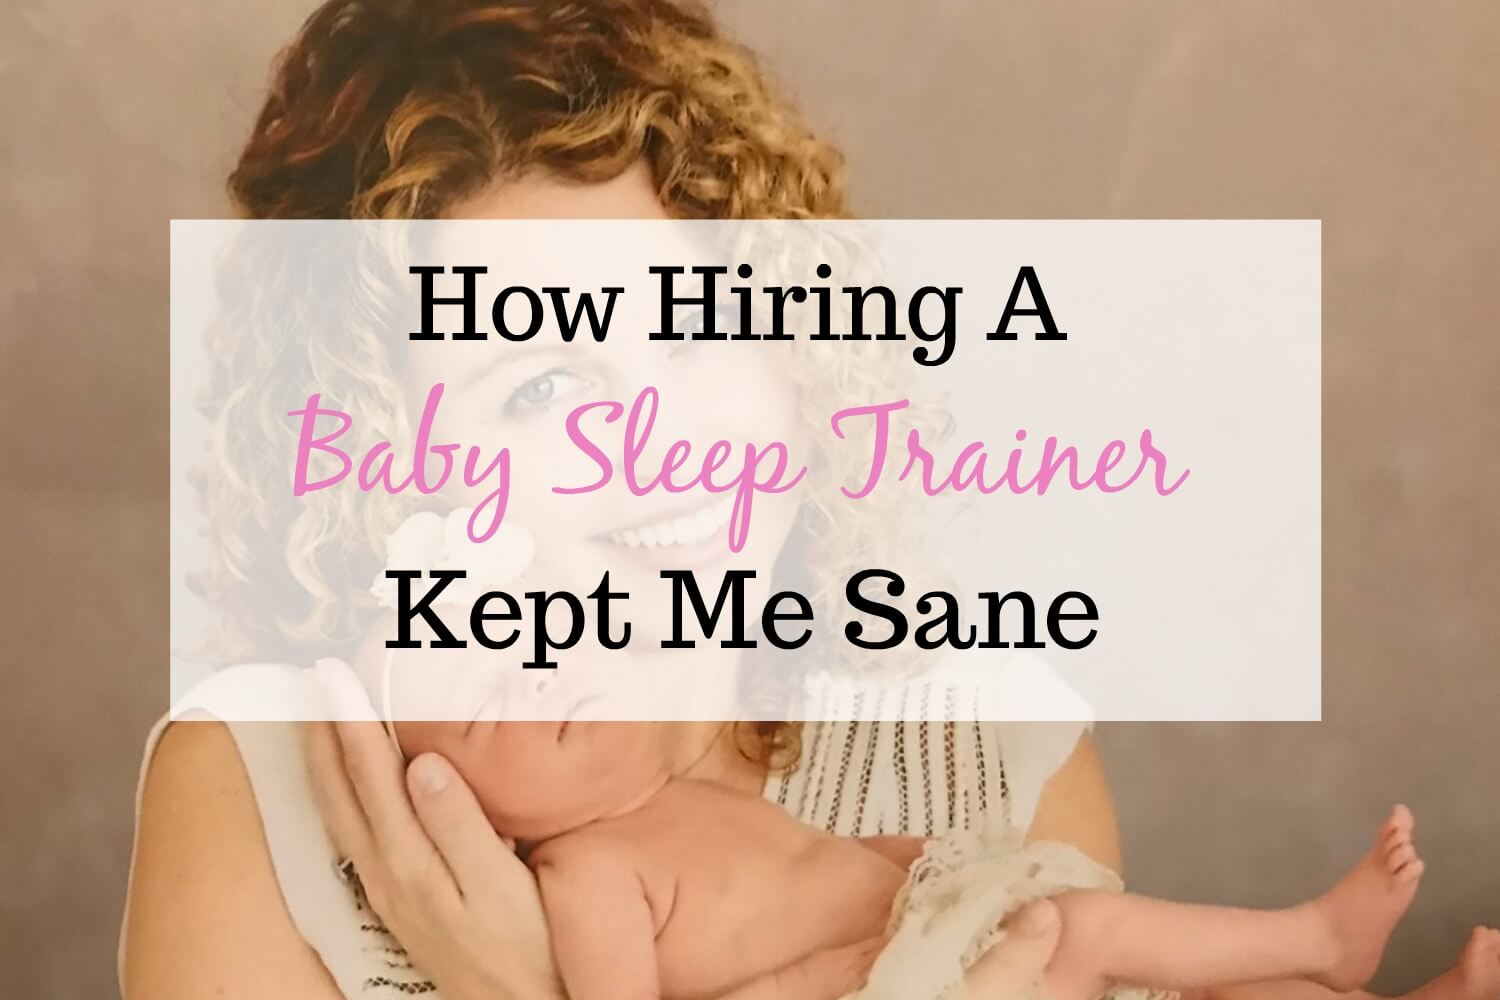 Get Yourself A Baby Sleep Trainer Now You Crazy Lady!